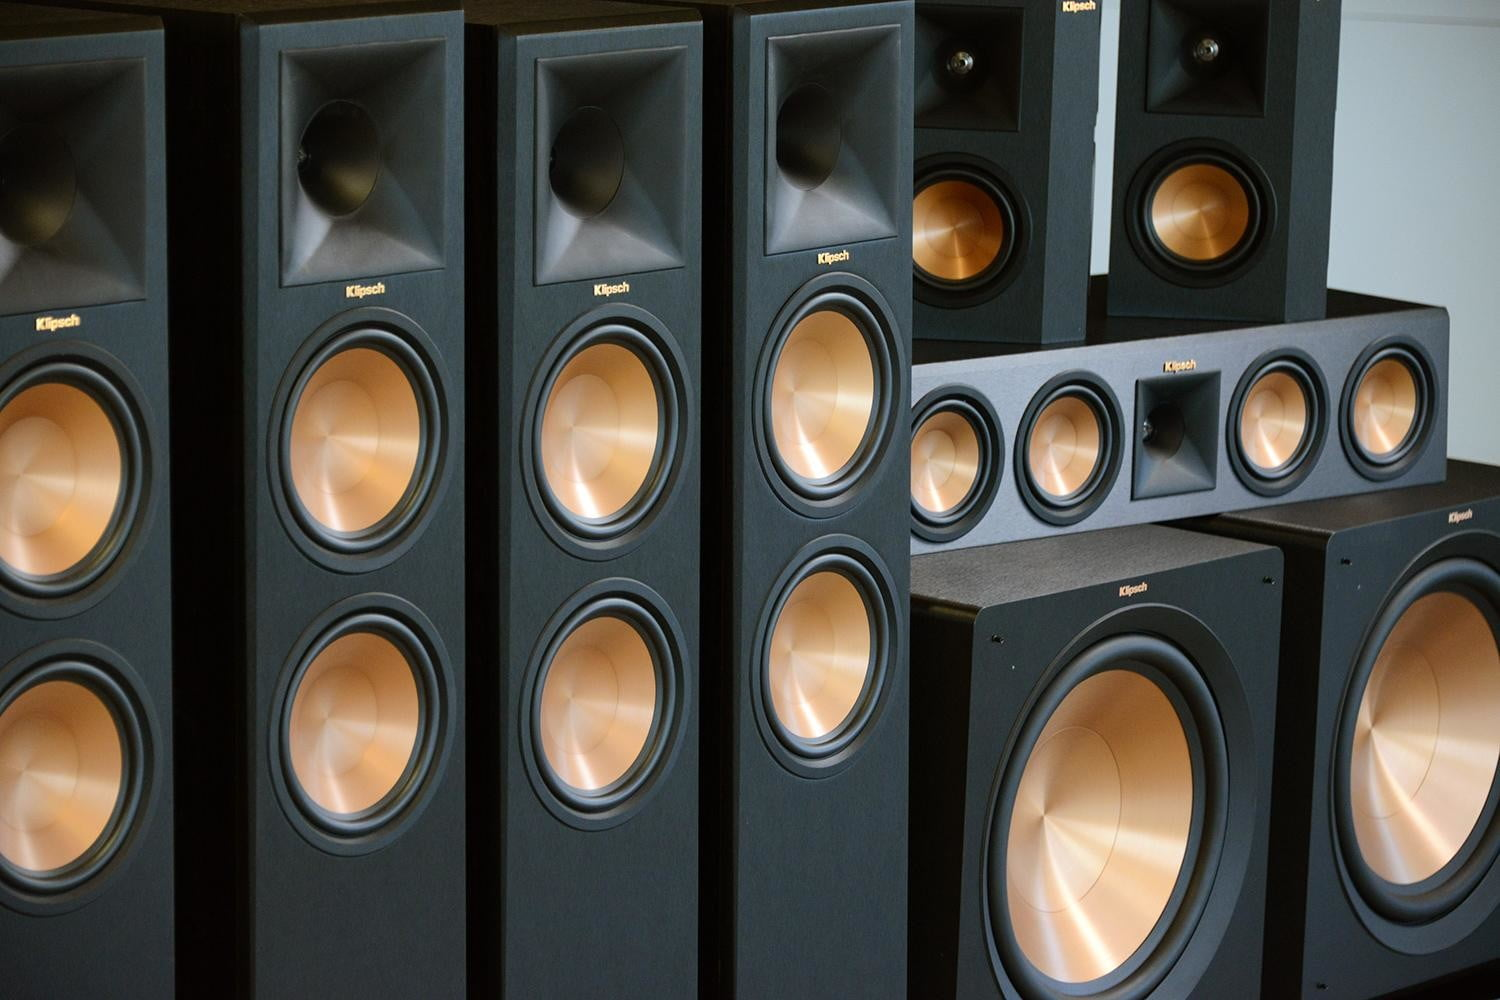 Speakers For Tv Surround Sound Speakers And More Speakers